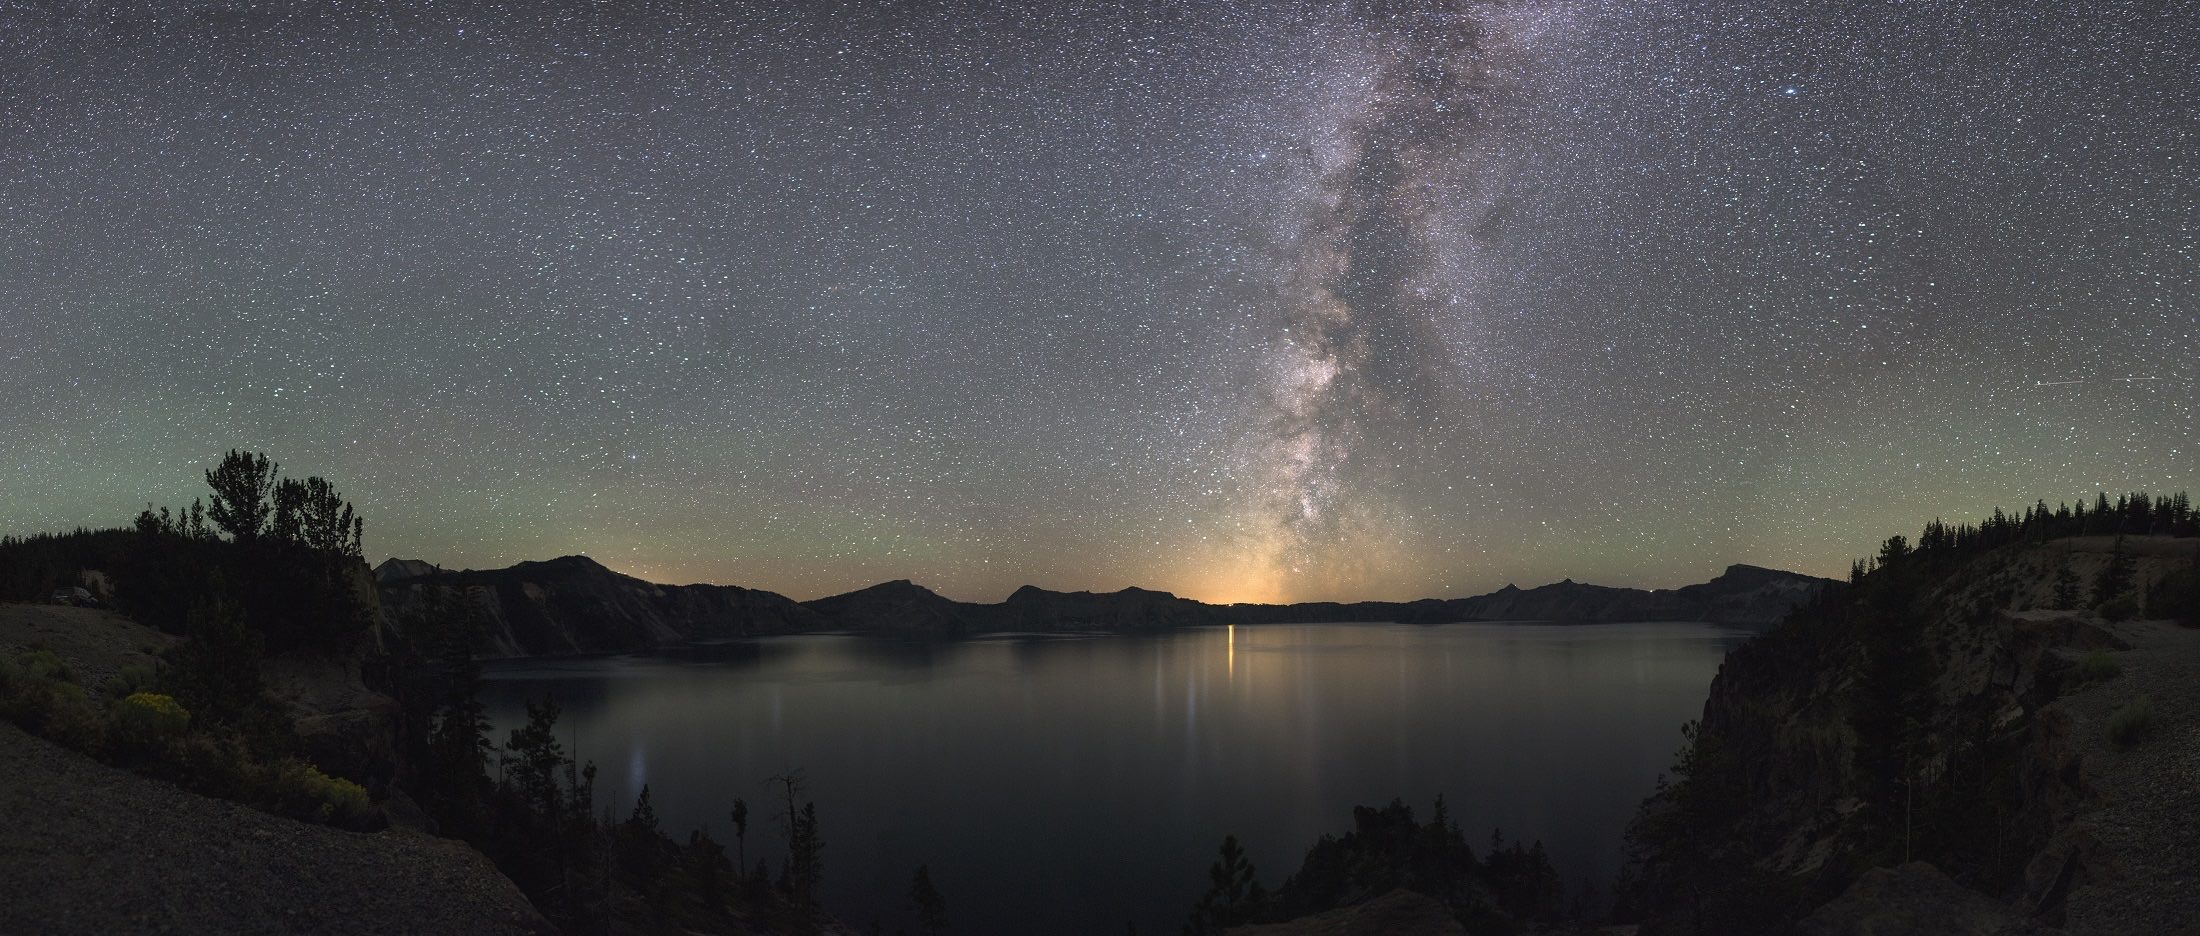 Crater Lake National Park.jpg